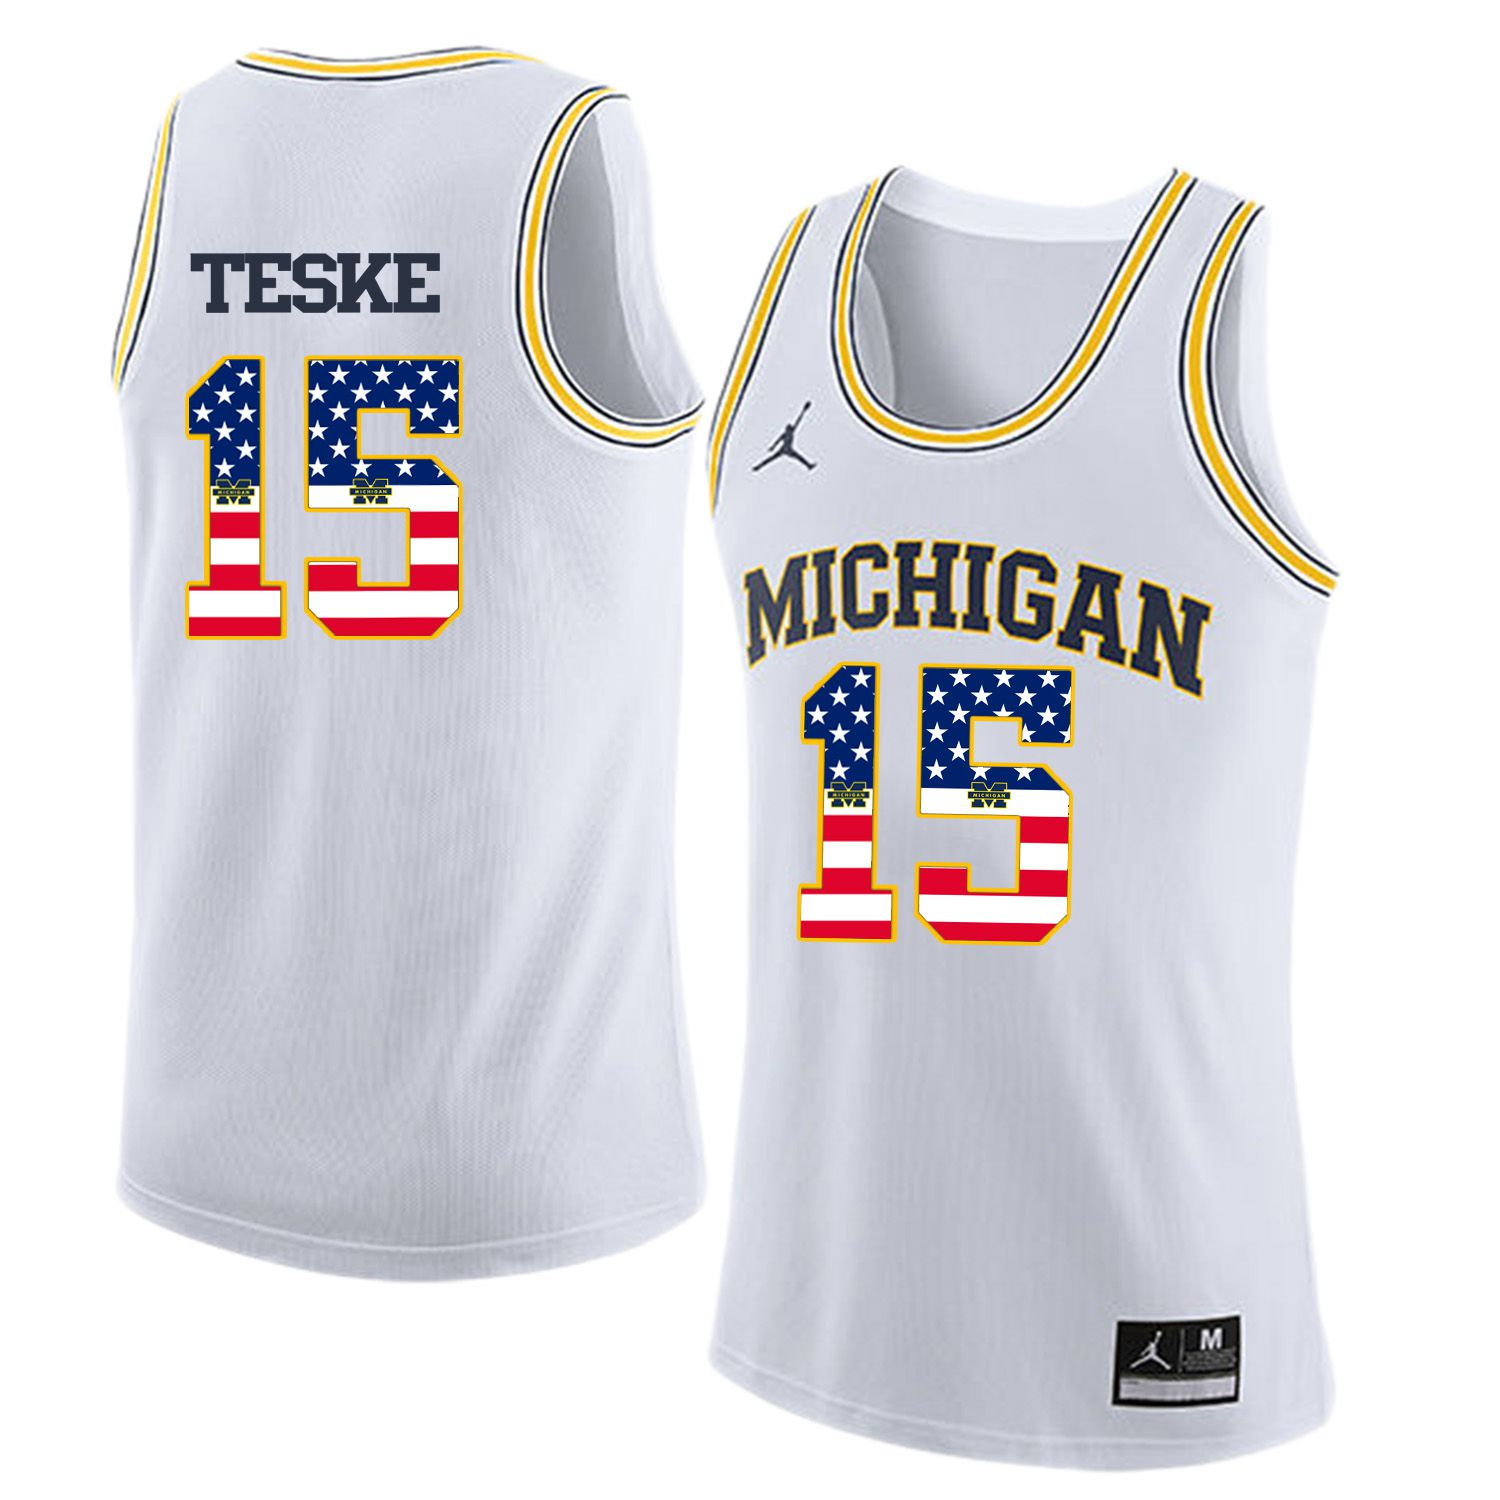 Men Jordan University of Michigan Basketball White 15 Teske Flag Customized NCAA Jerseys